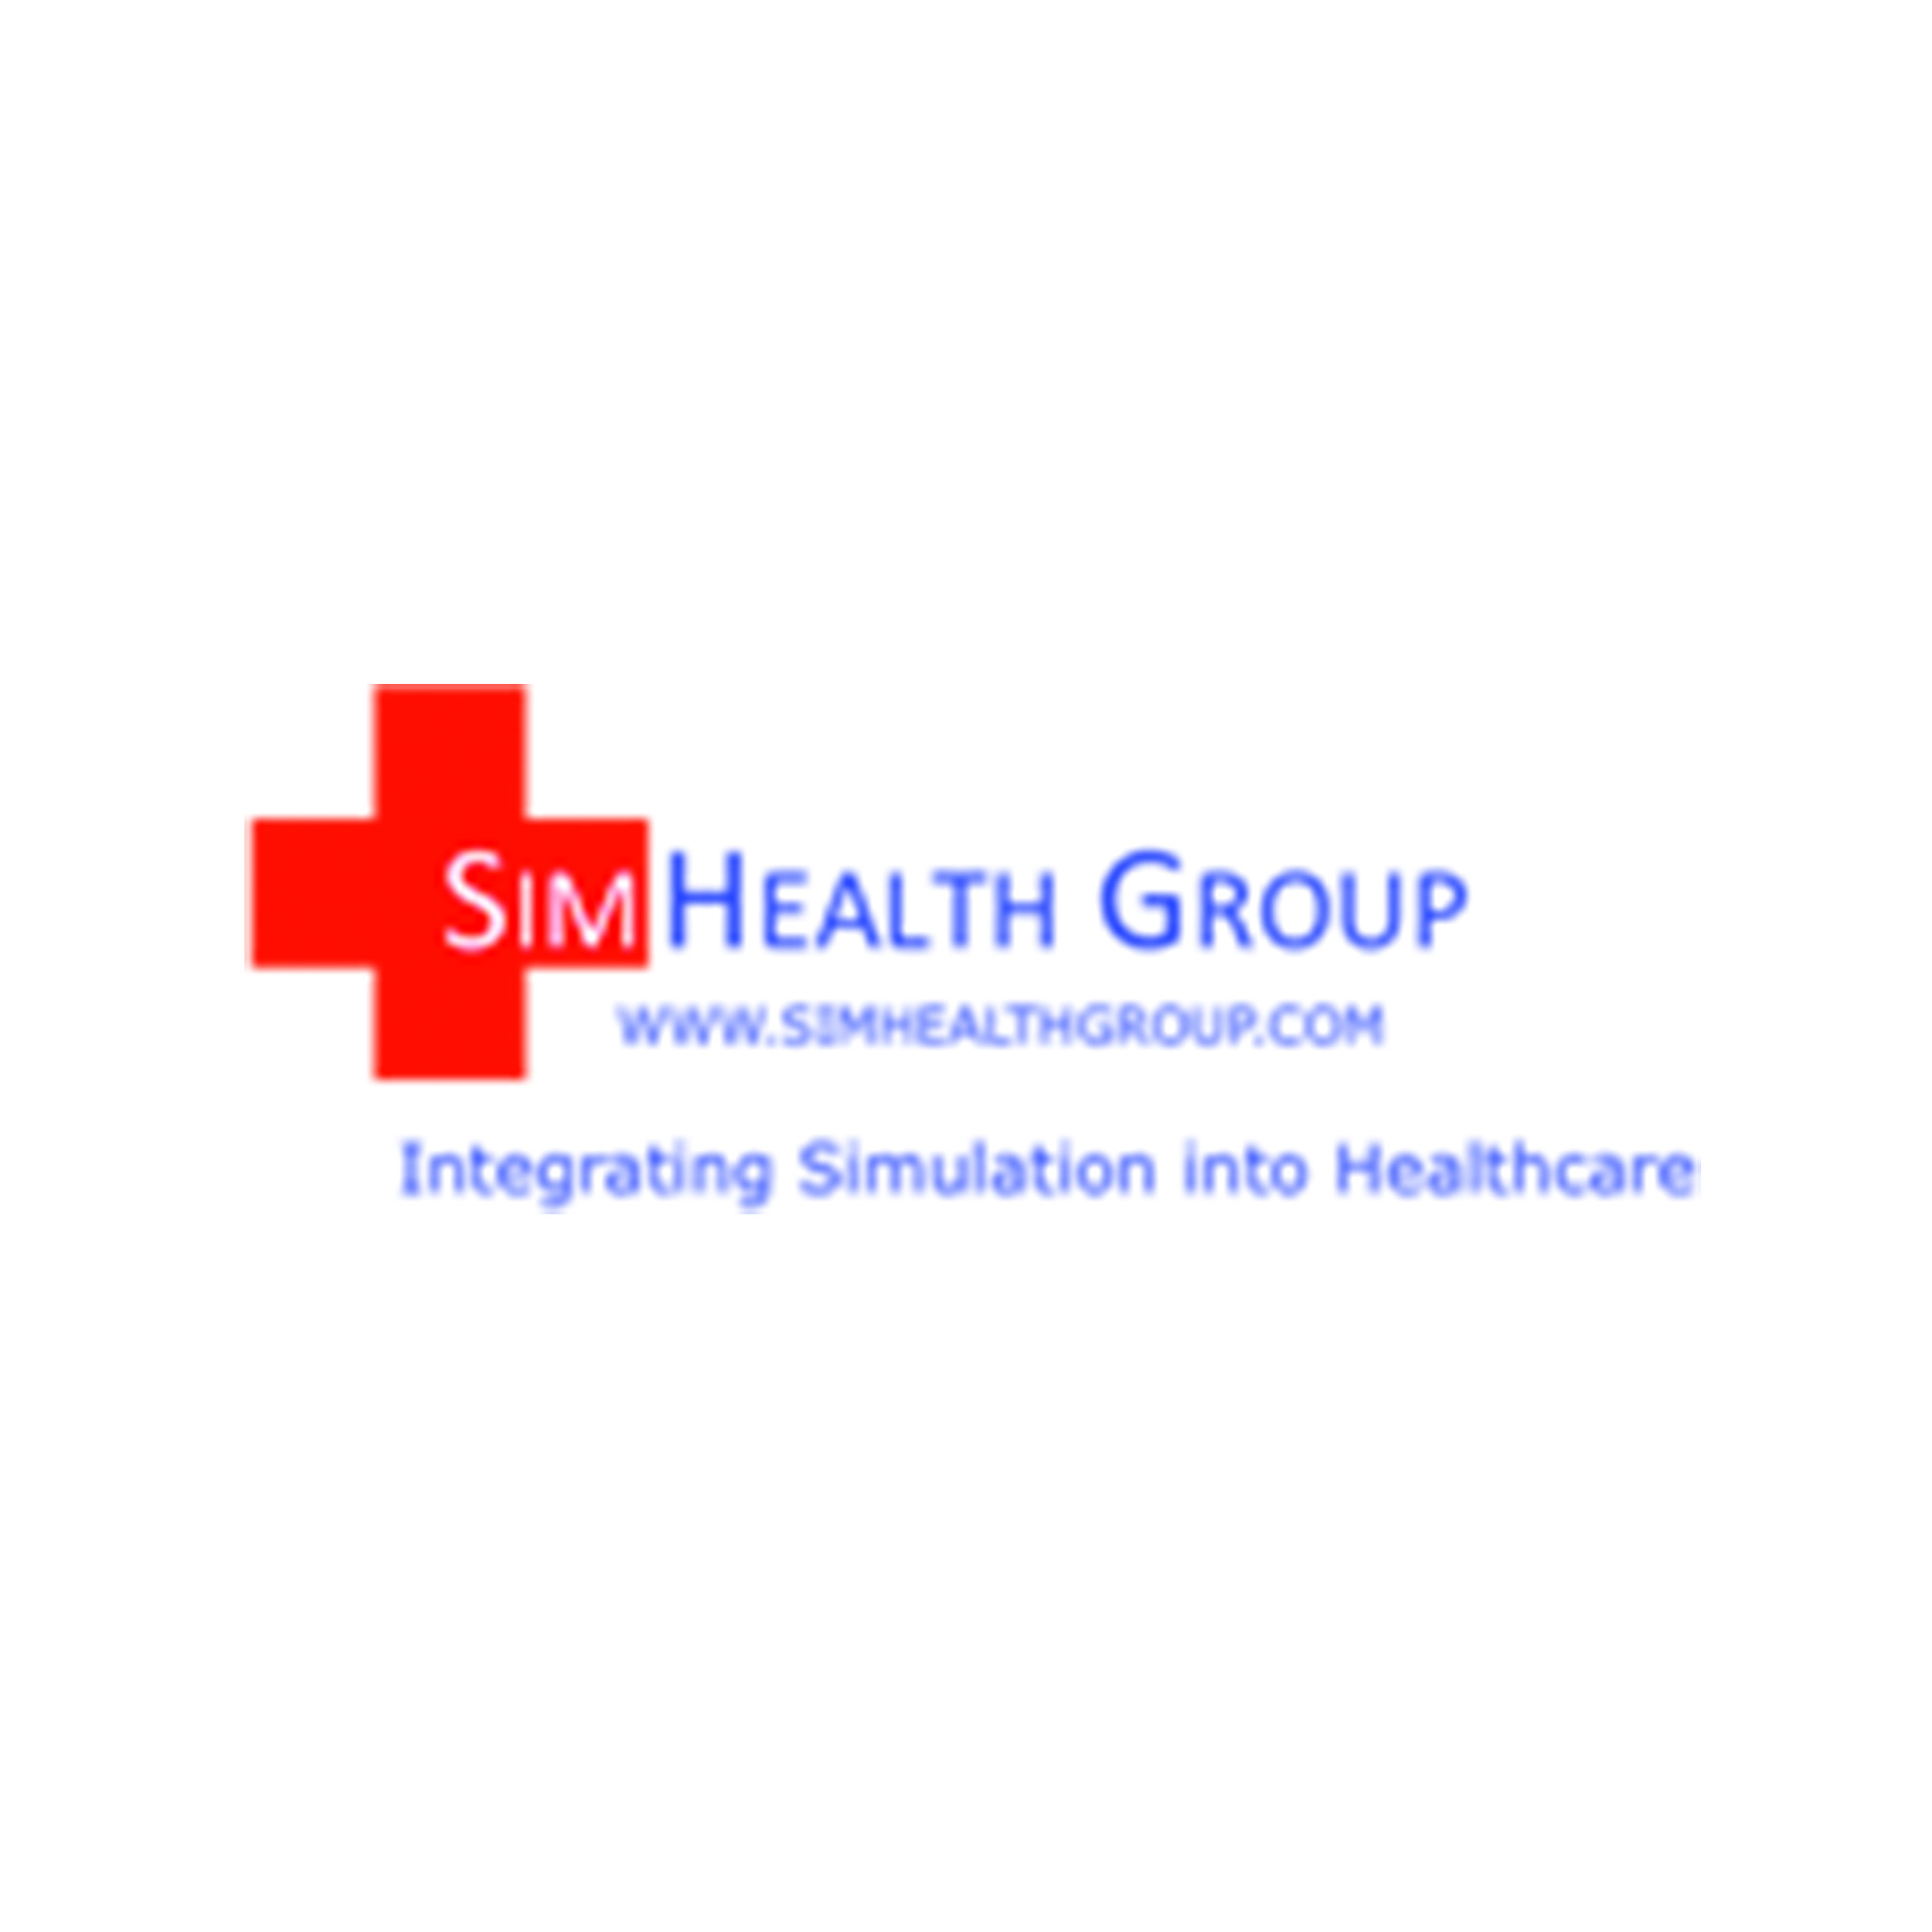 Sim Health Group logo